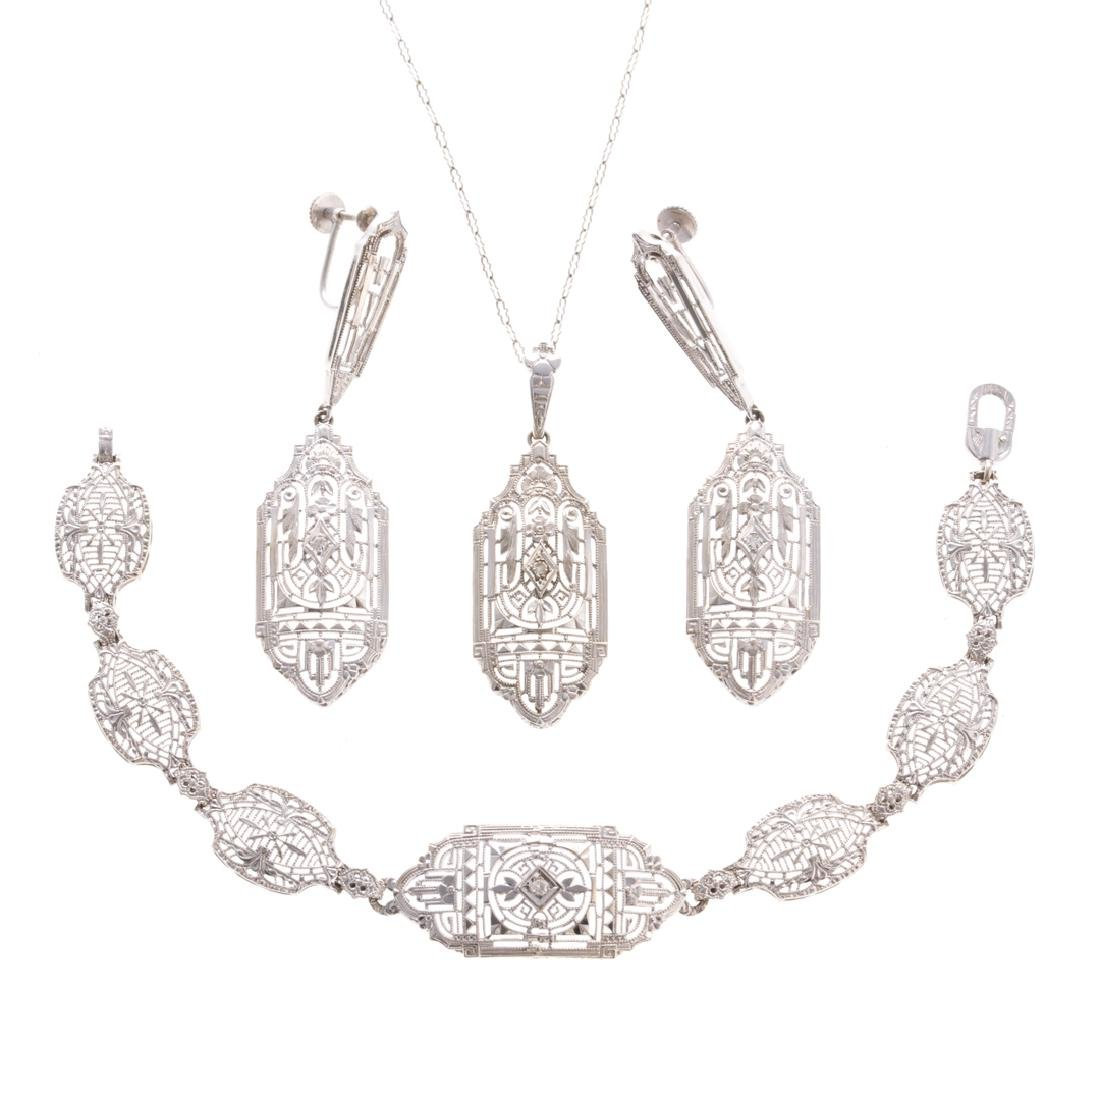 A Suite of Lady's 14K White Gold Filigree Jewelry